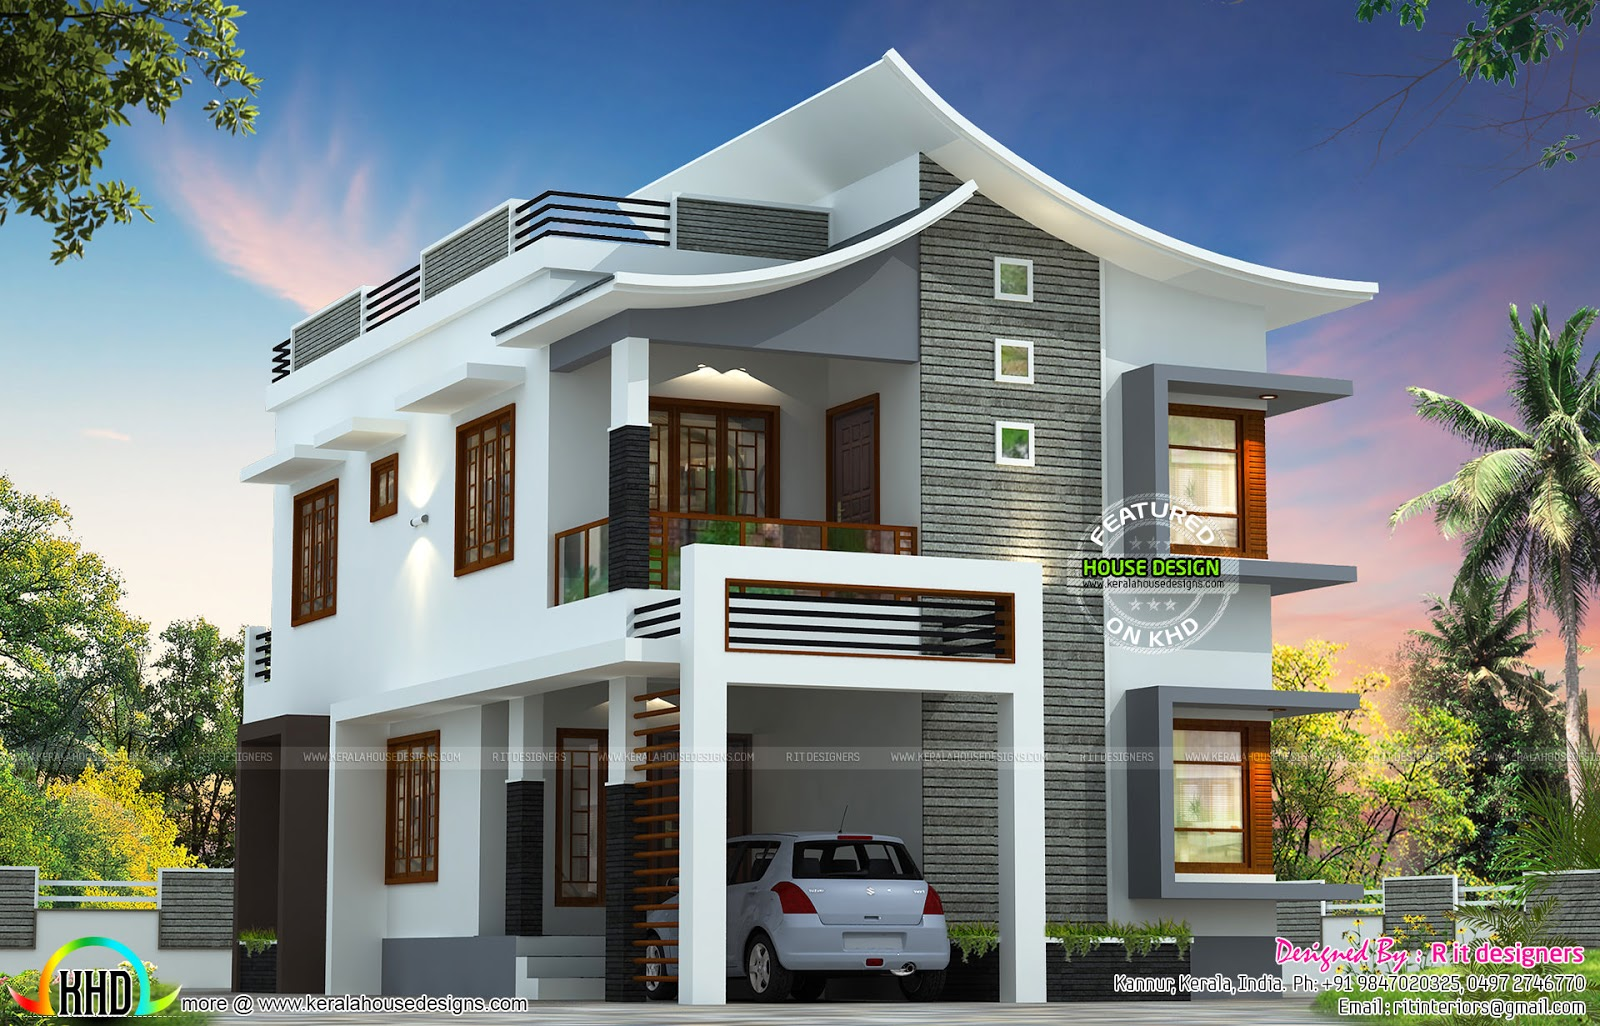 New House Design Of February 2016 Kerala Home Design And Floor Plans